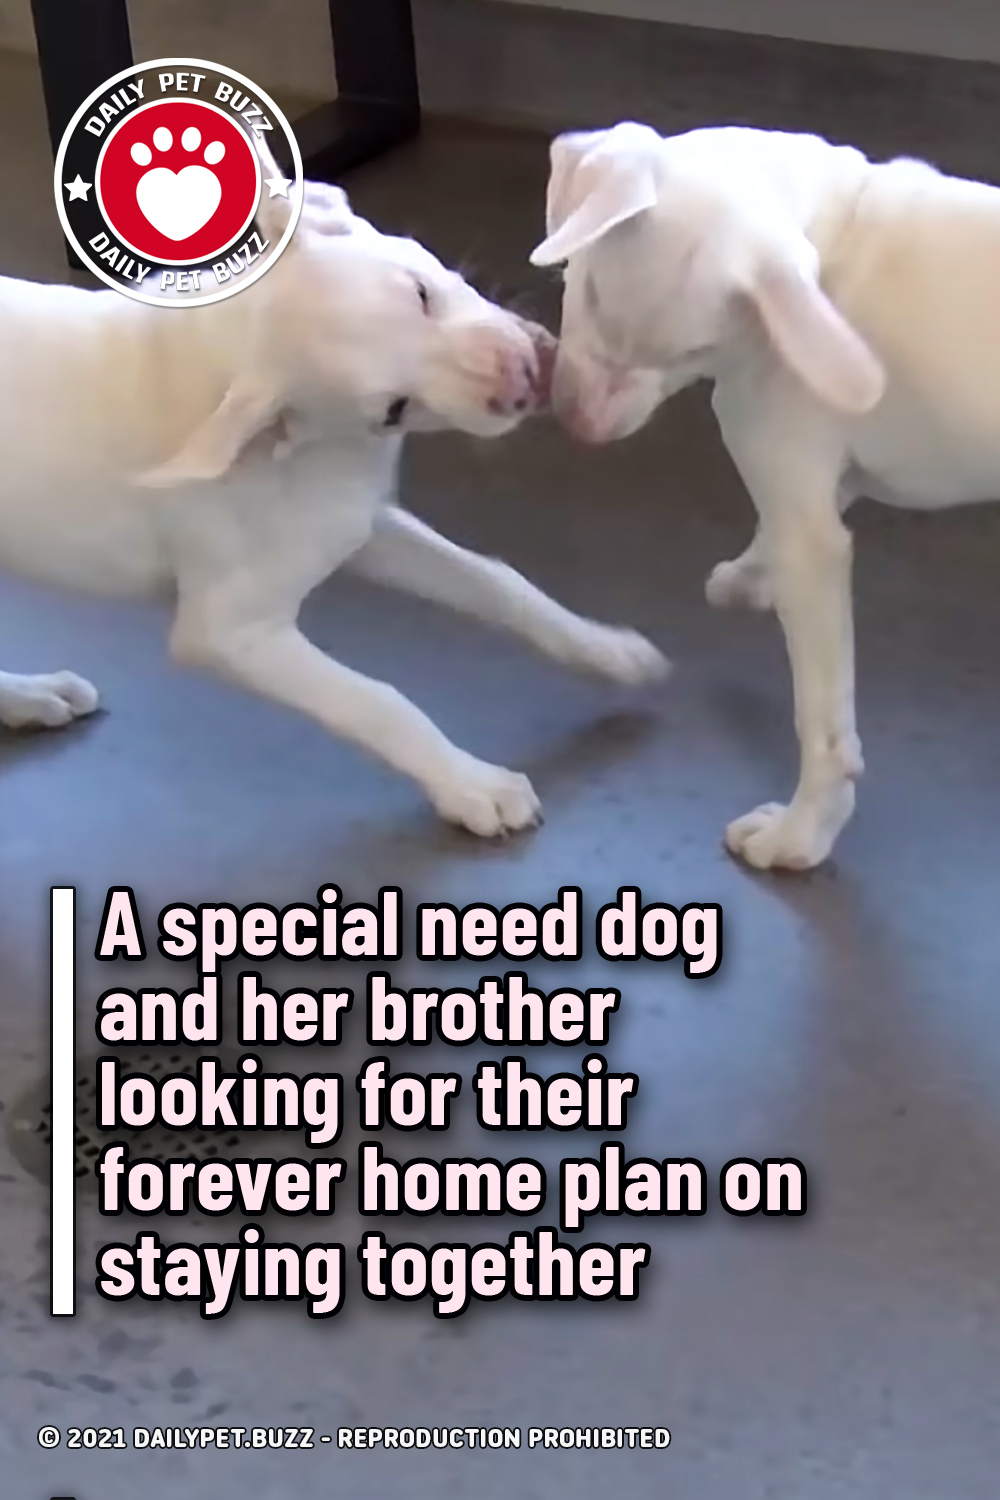 A special need dog and her brother looking for their forever home plan on staying together